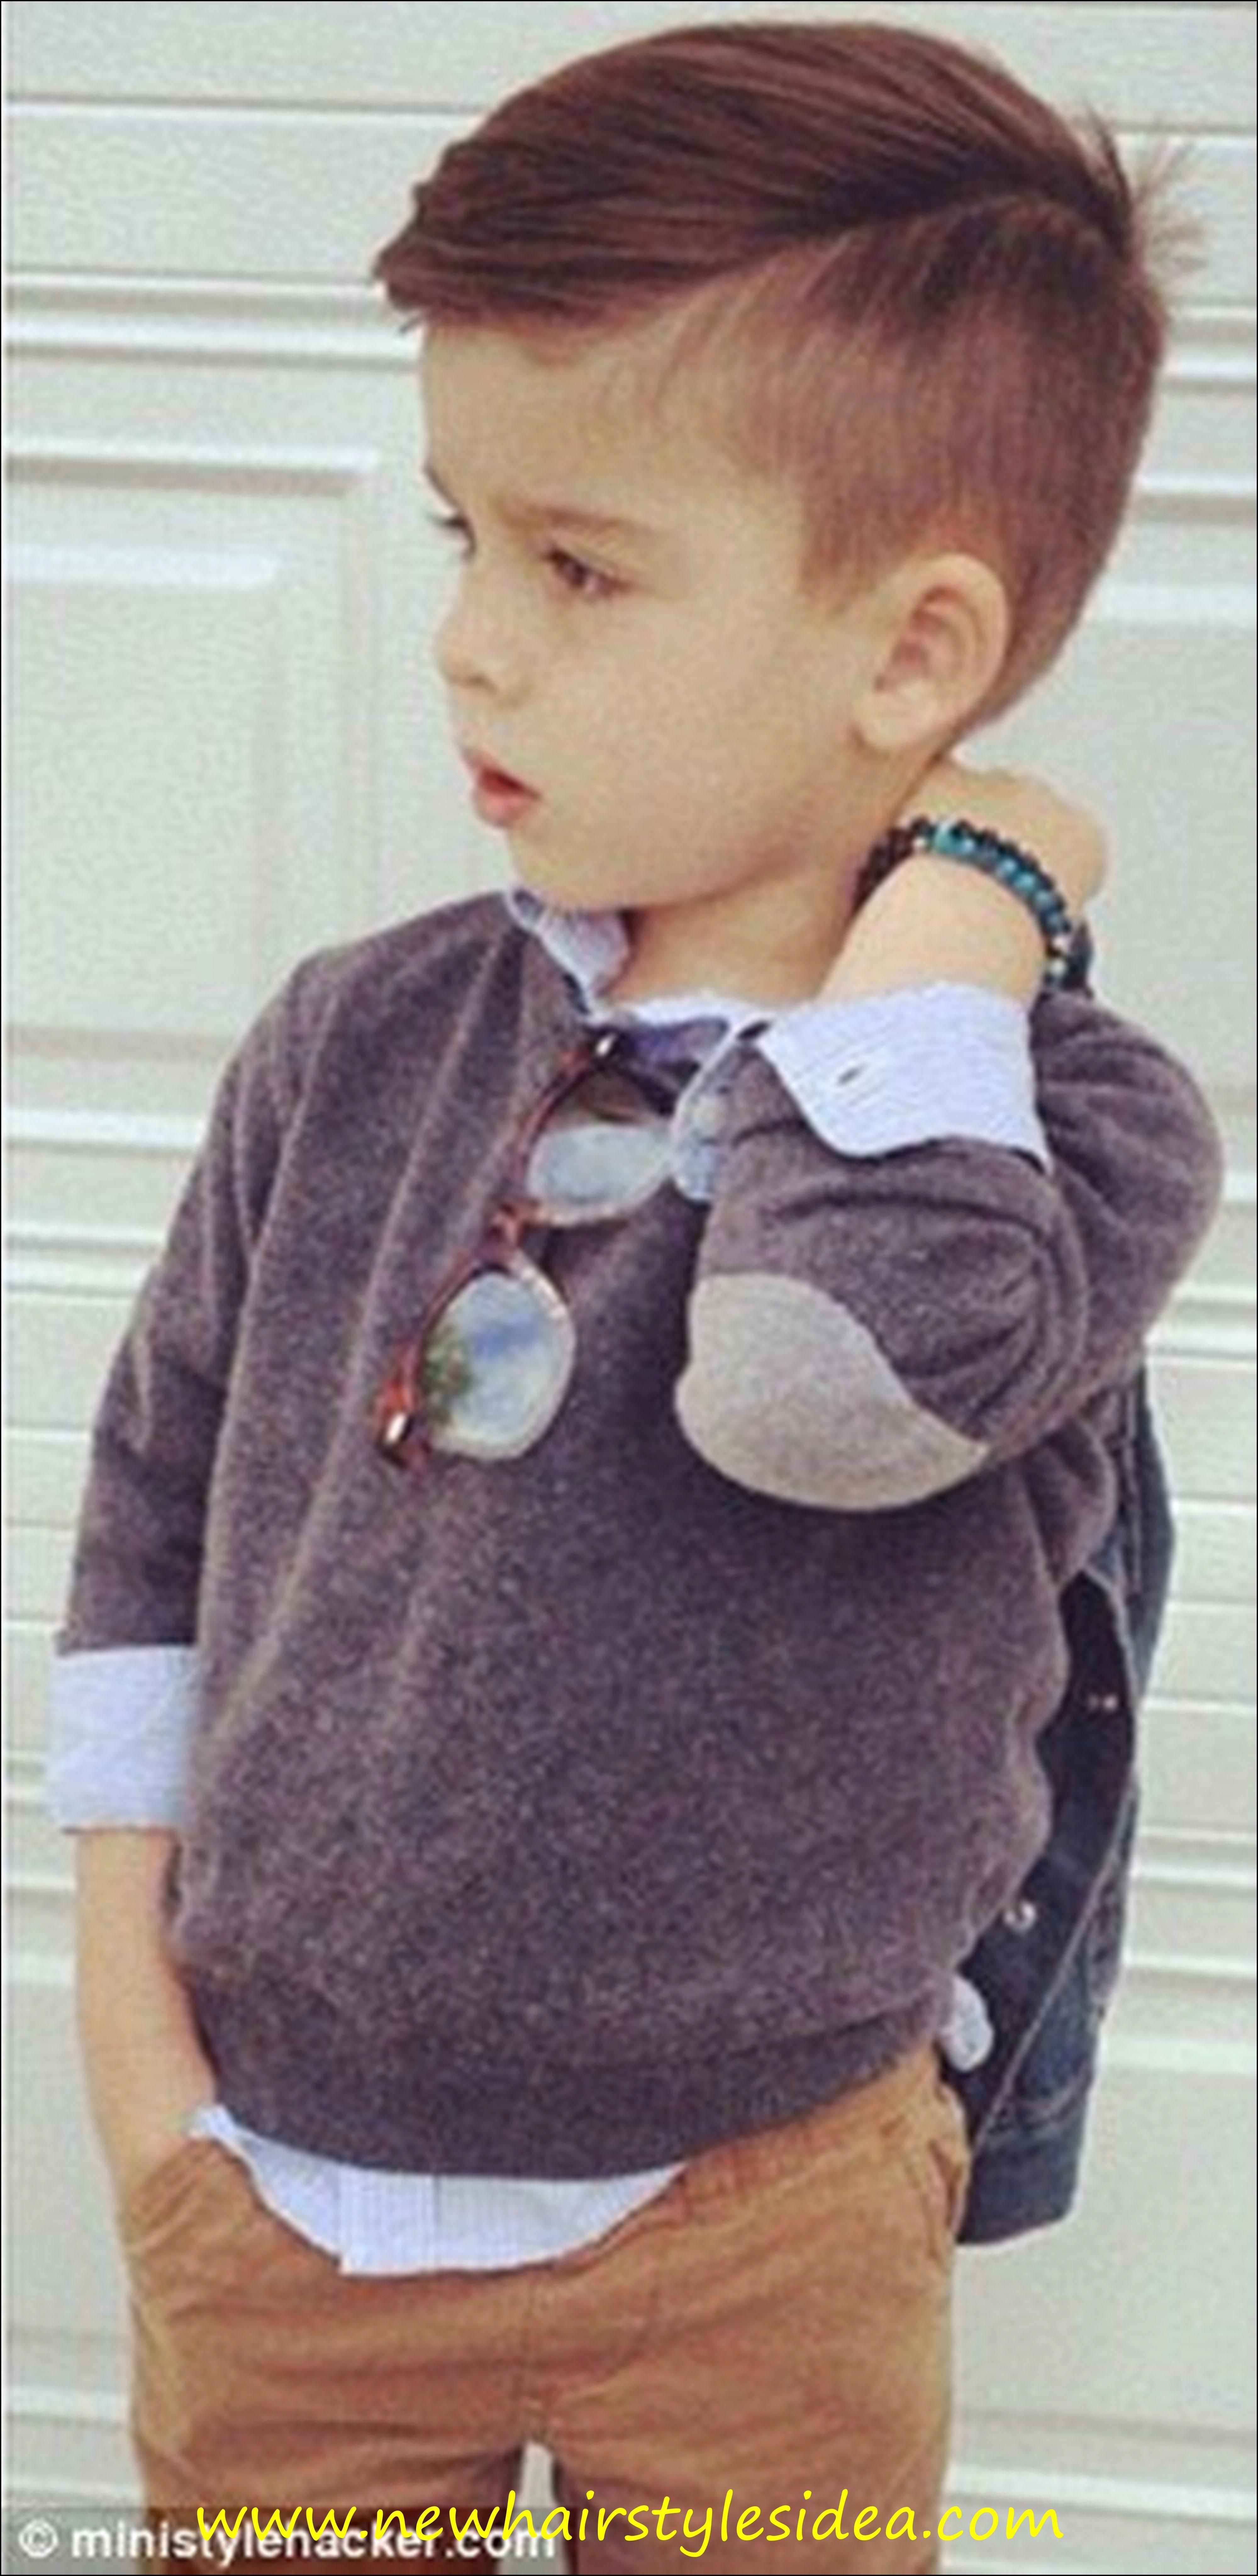 Pin On Cute Kids Hairstyles